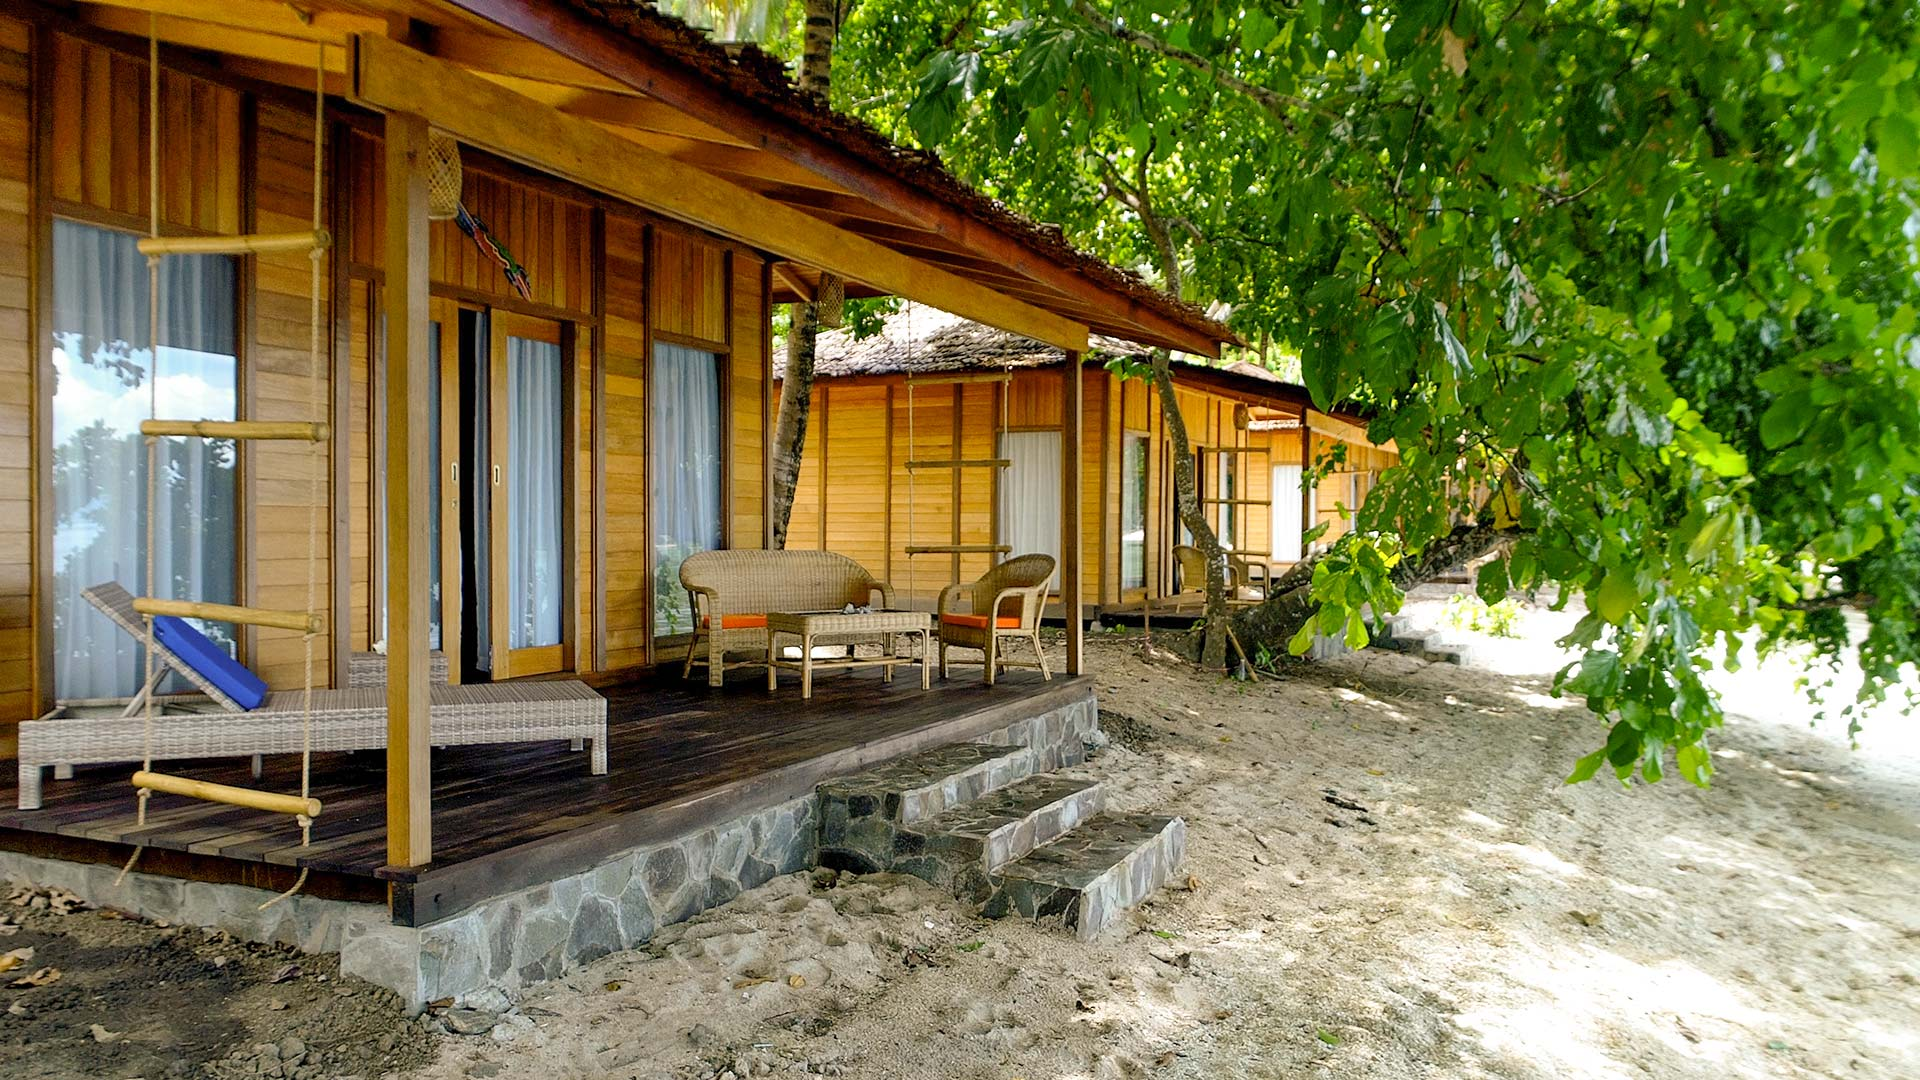 Beach Villas - Sali Bay Dive Resort, South Halmahera, North Maluku